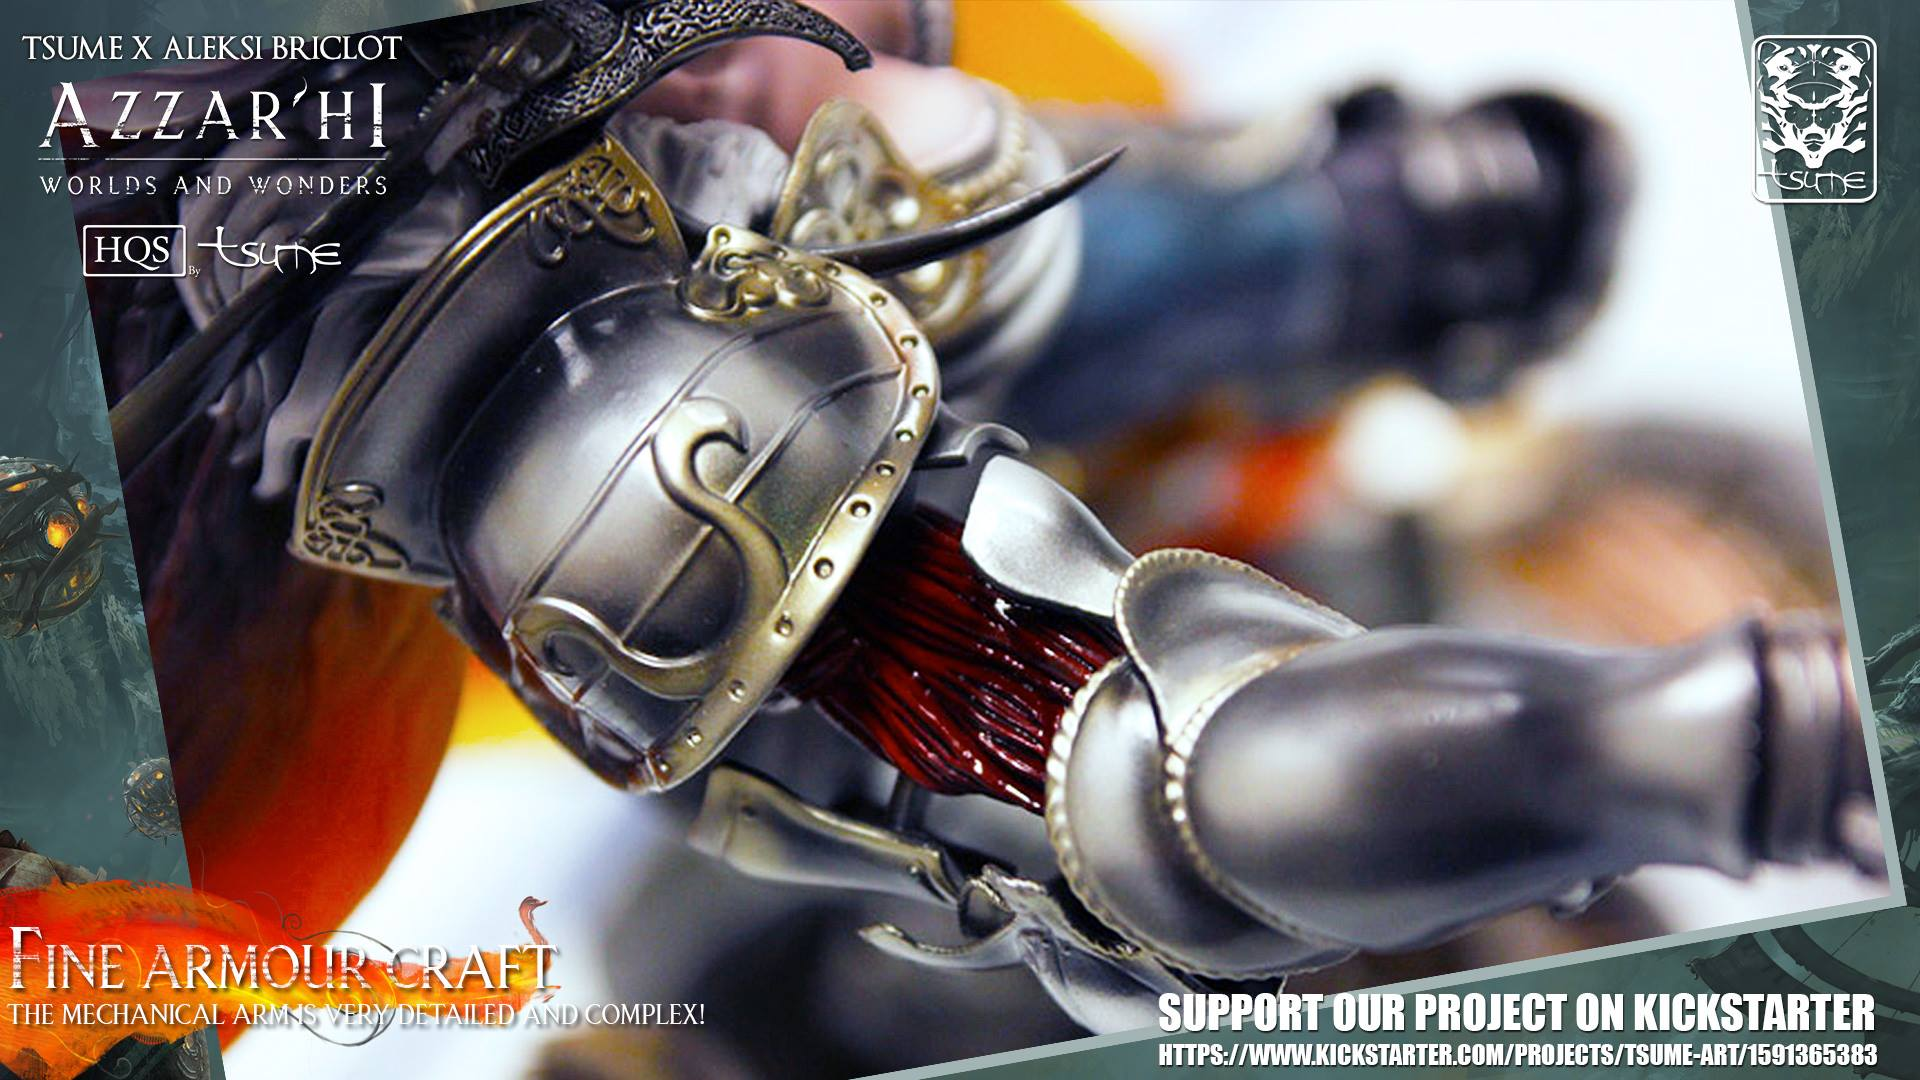 Azzarhi High Quality Statue Project Page 2 Tsume Art Chunli Click Here To View The Original Image Of 1920x1080px